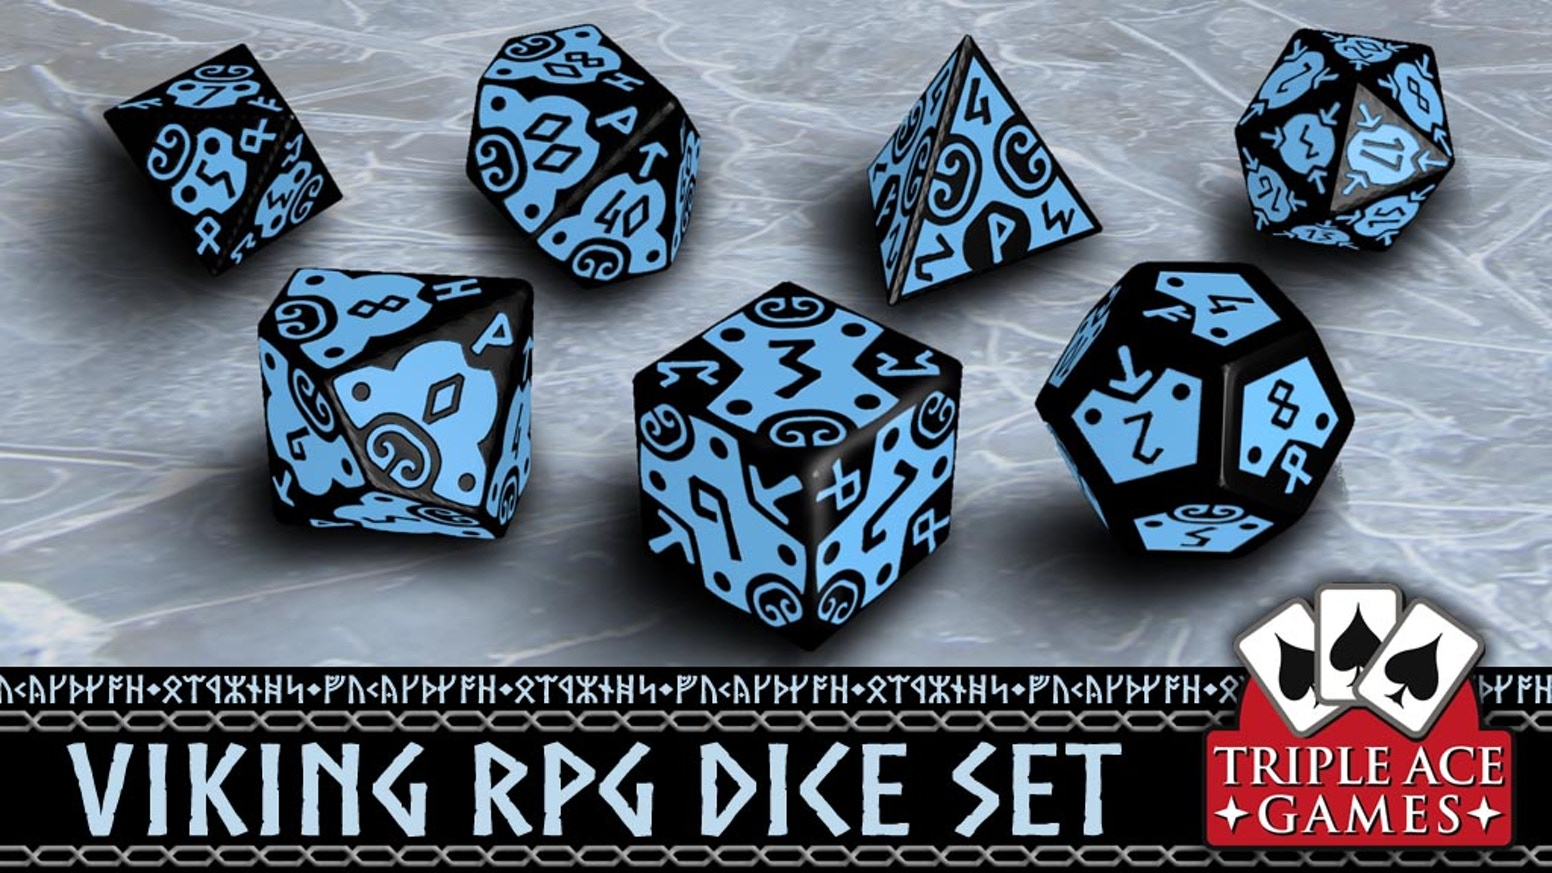 Seven 16mm engraved polyhedral dice with a Viking theme! Variety of colors available.